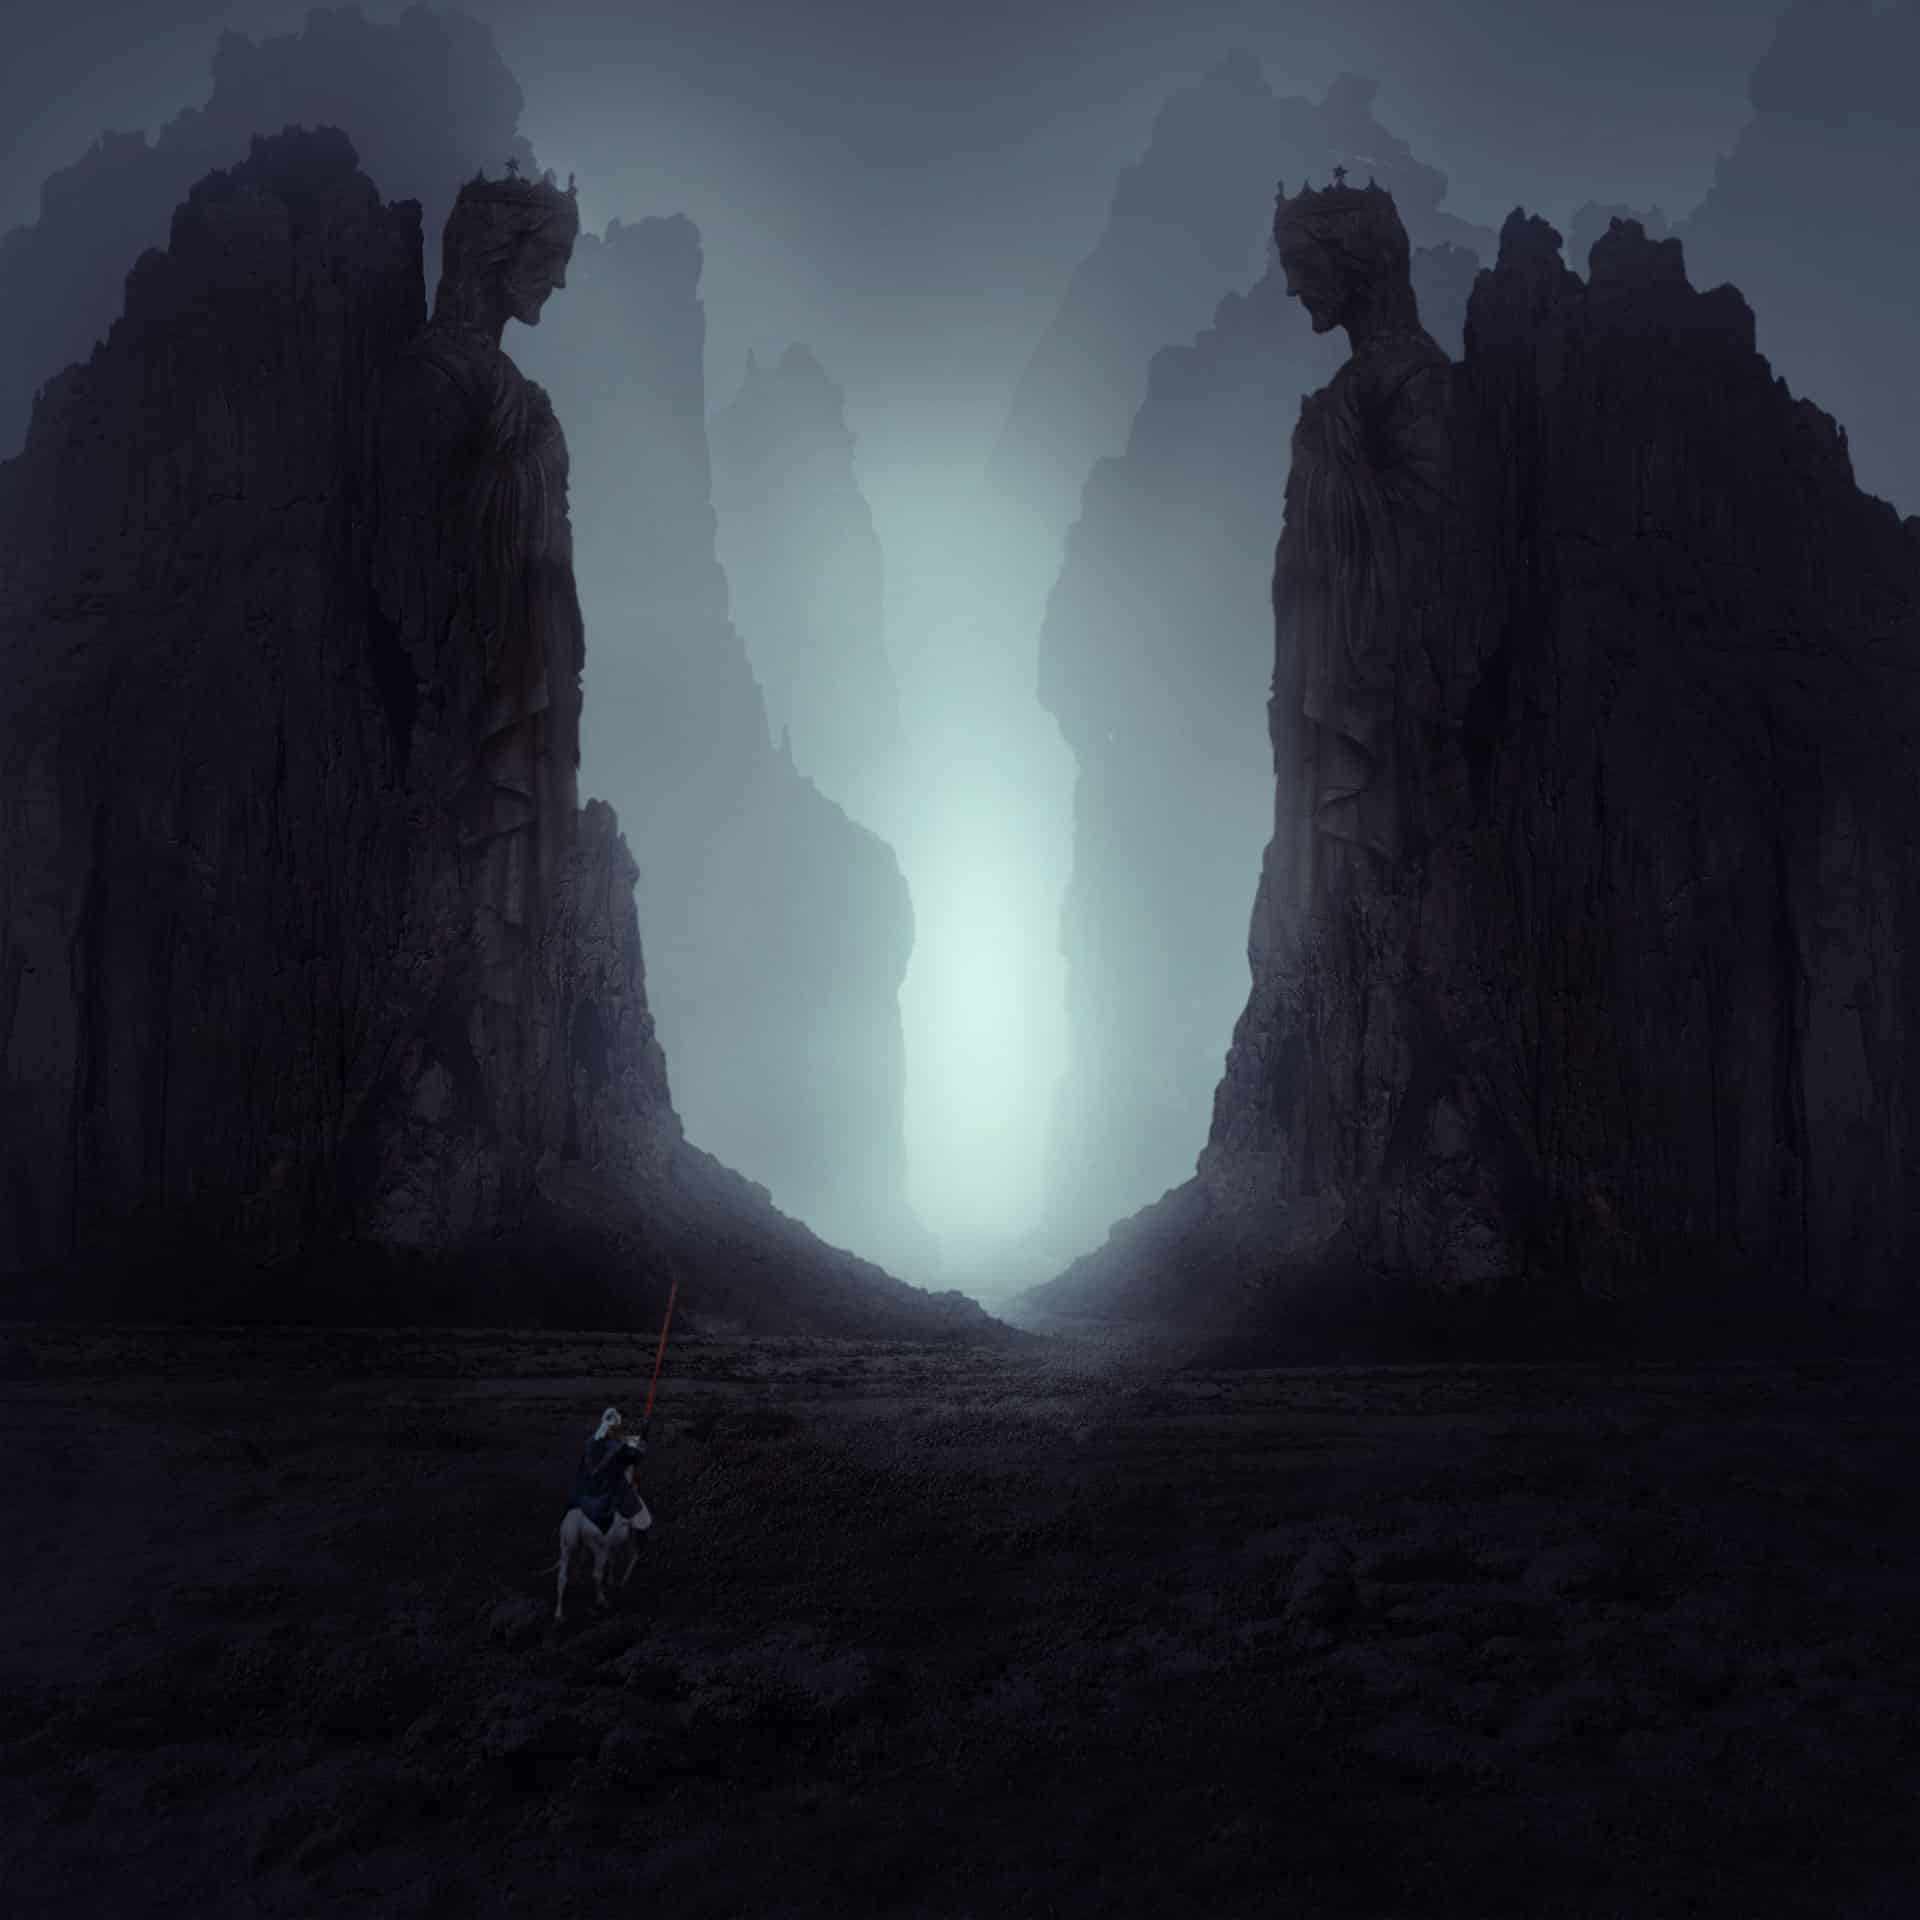 Create a Dark and Mysterious Landscape Matte Painting with Photoshop